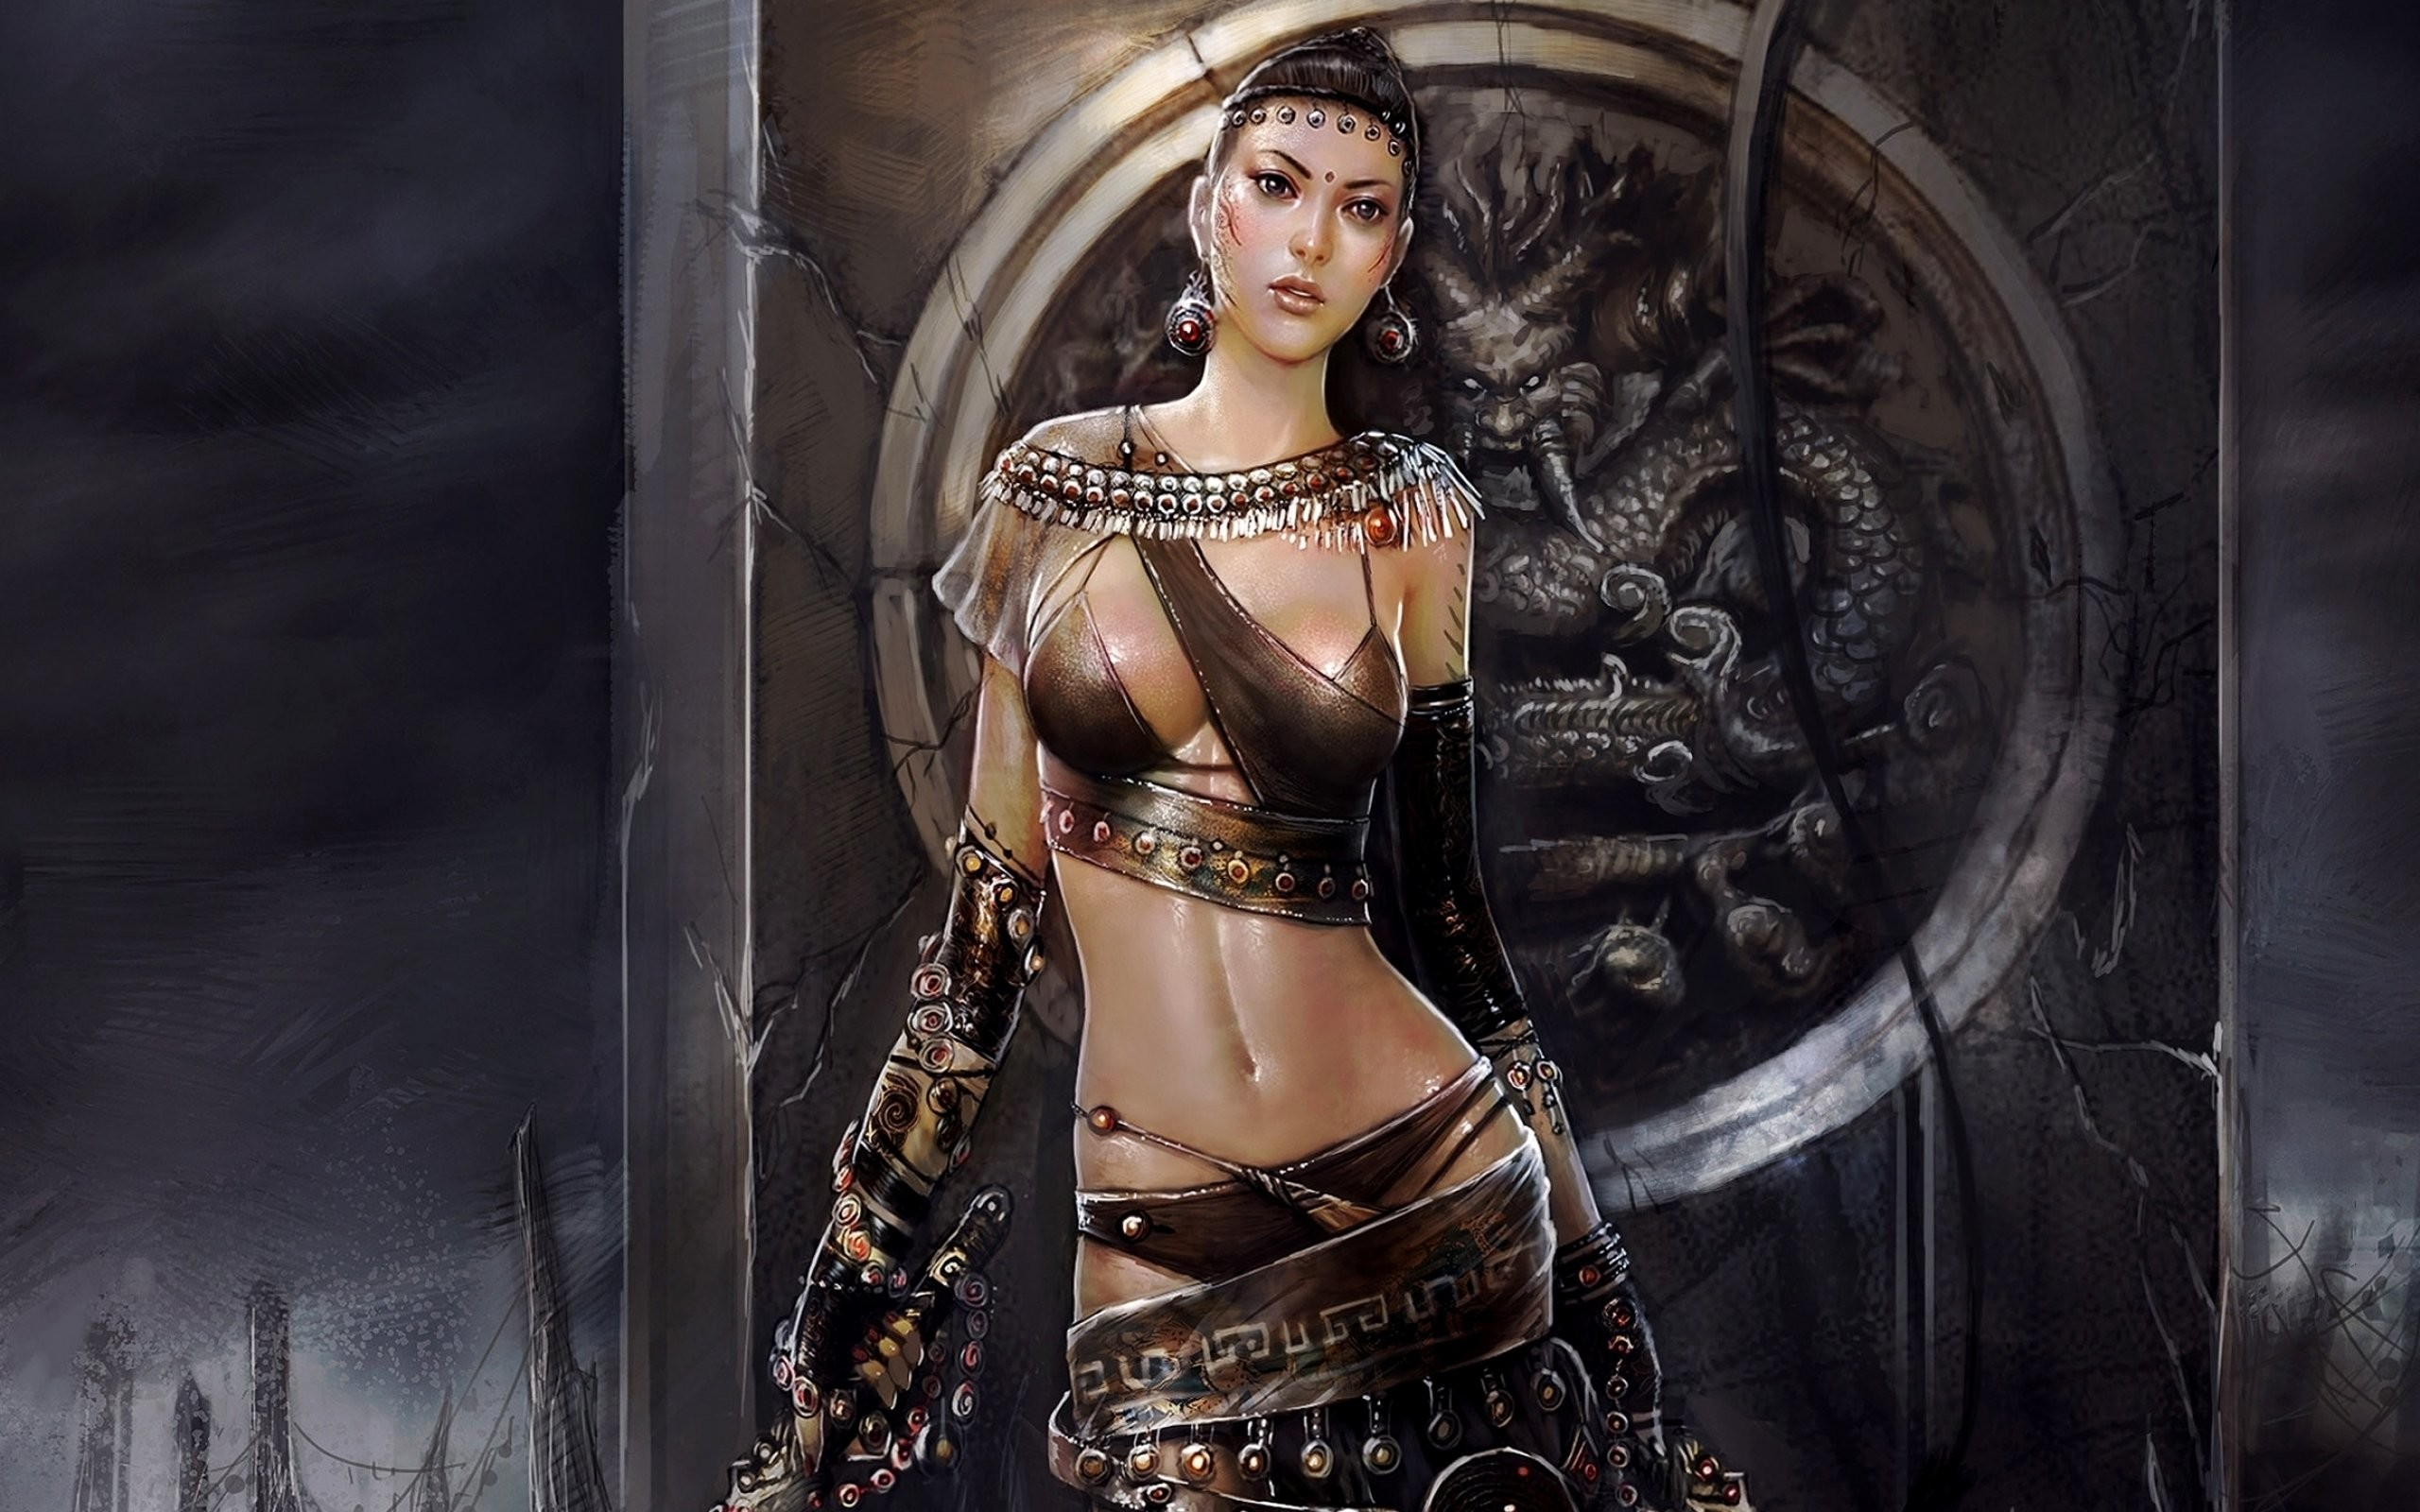 2560x1600 LUIS ROYO fantasy warrior painting art sexy babe wallpaper |  |  407512 | WallpaperUP